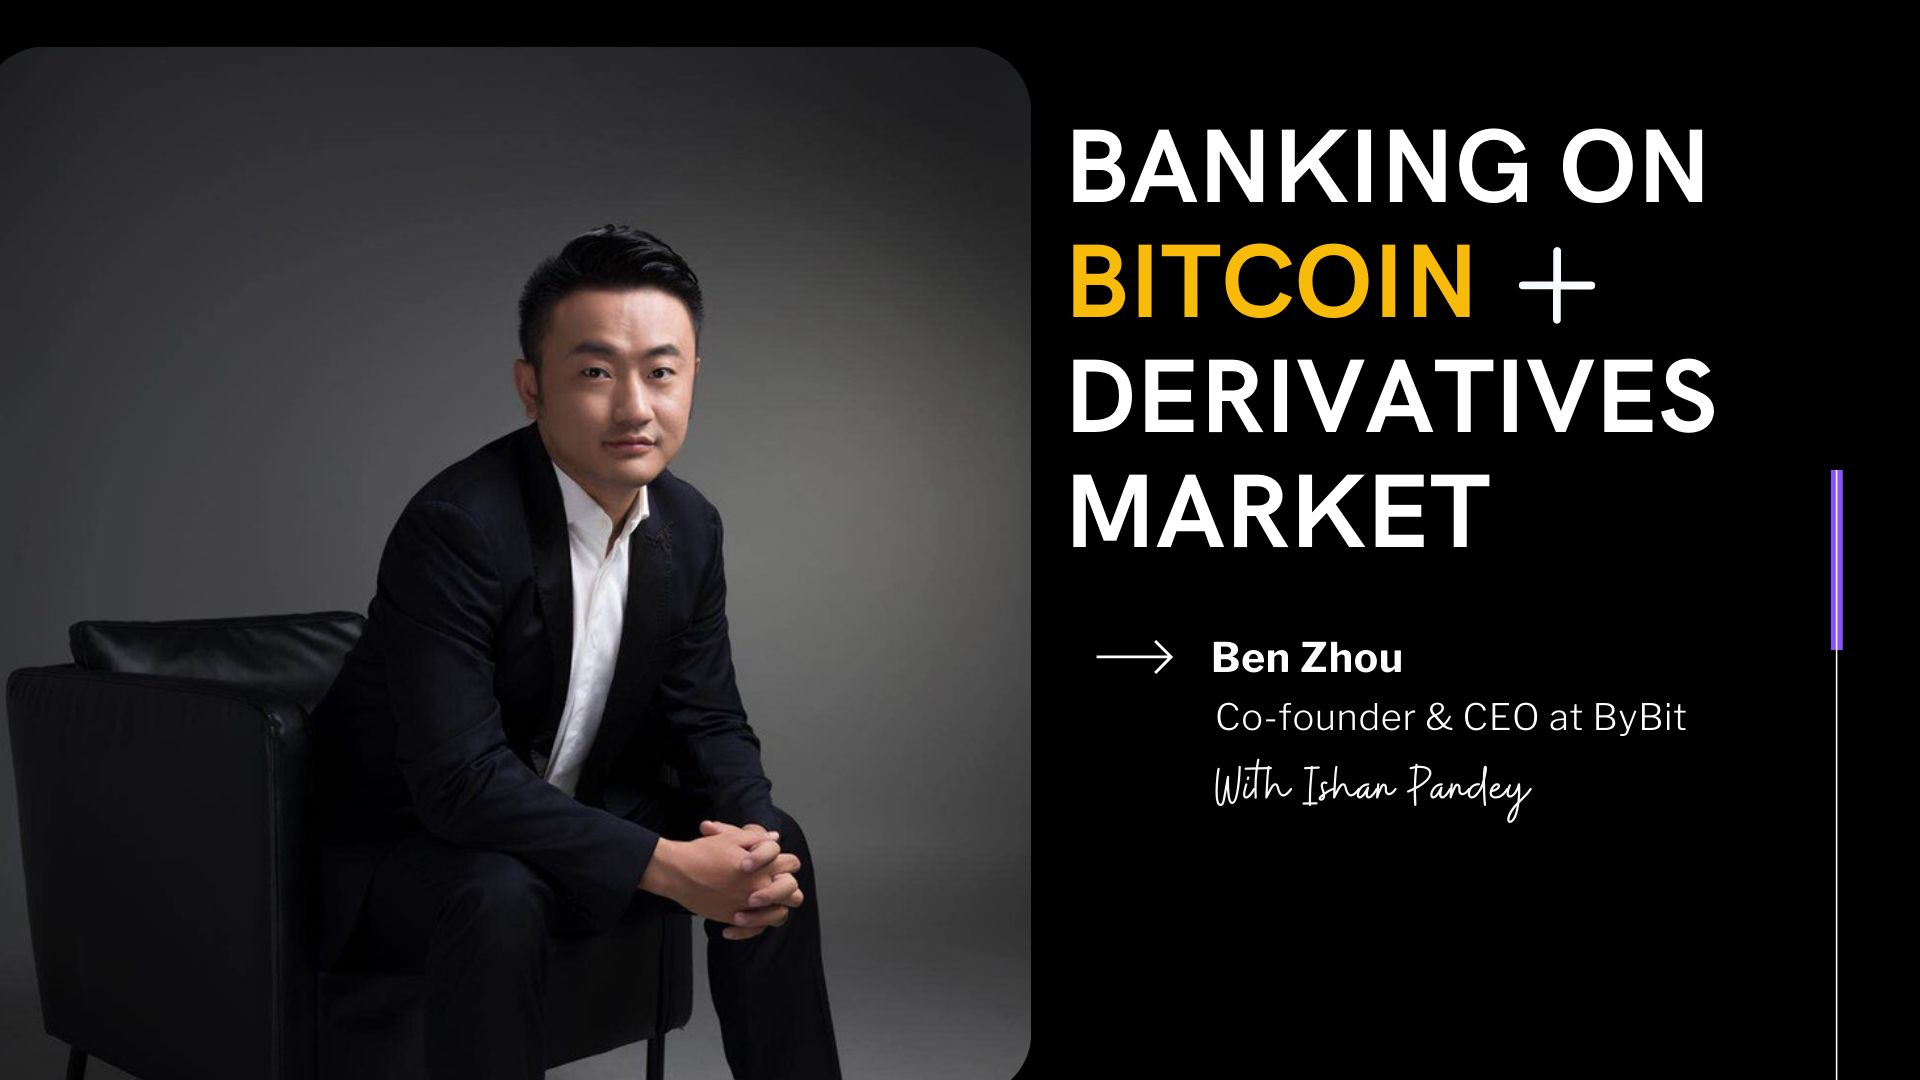 /investing-in-cybersecurity-to-build-a-successful-exchange-with-ben-zhou-ceo-at-bybit-562333w0 feature image